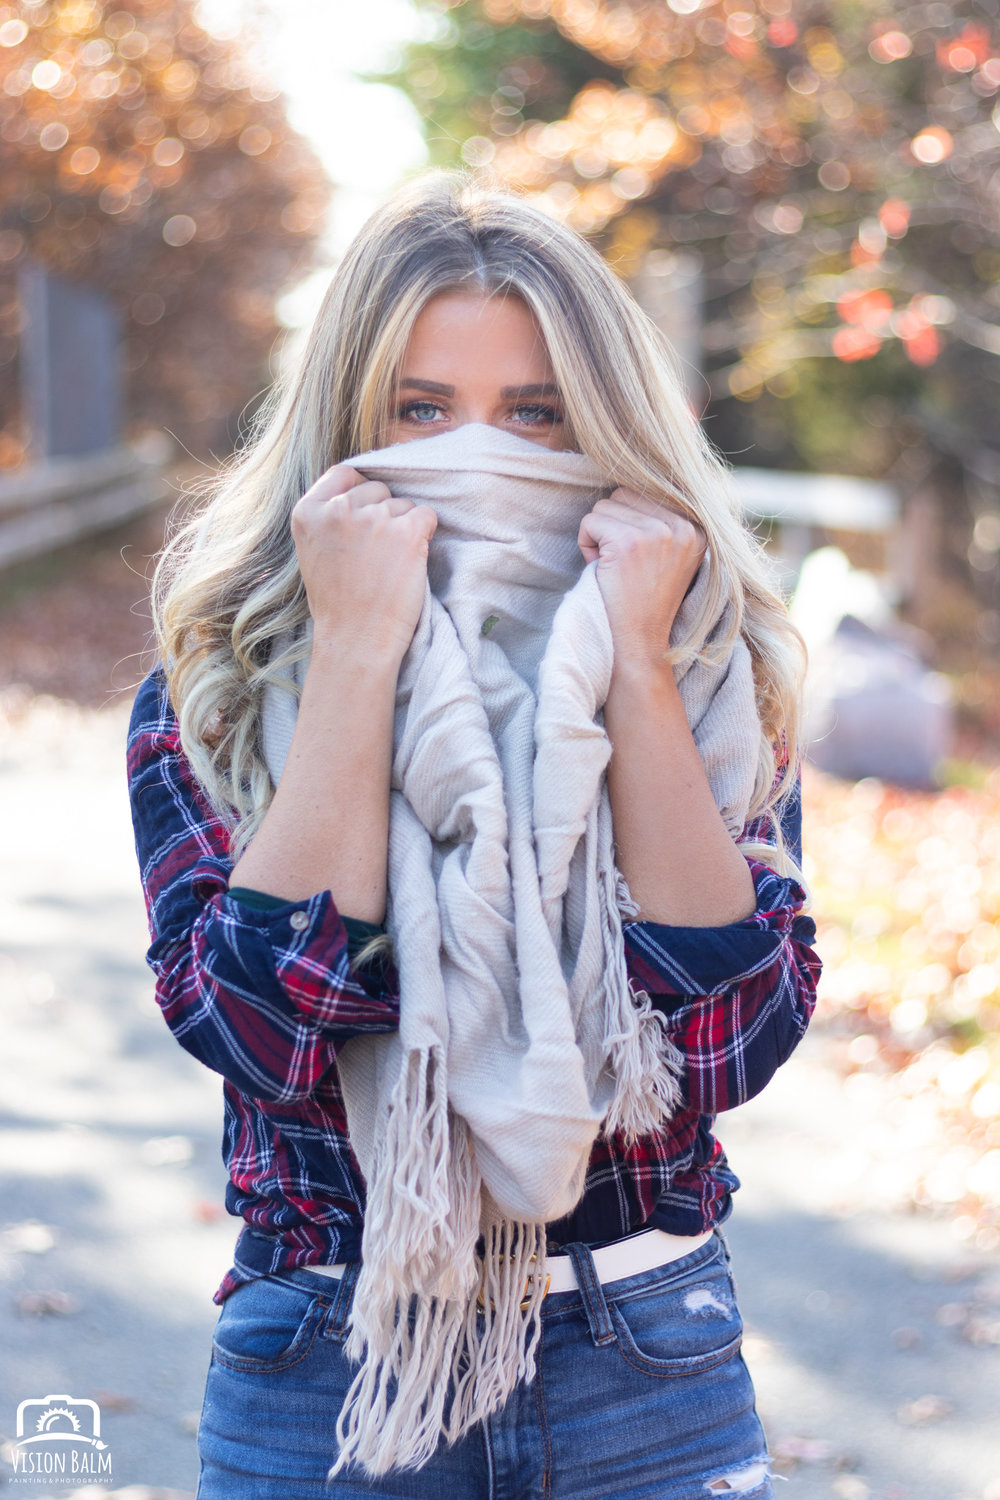 Professional fall portrait photography of model wearing a scarf and plaid shirt photographed by Vision Balm in Charleston, SC.